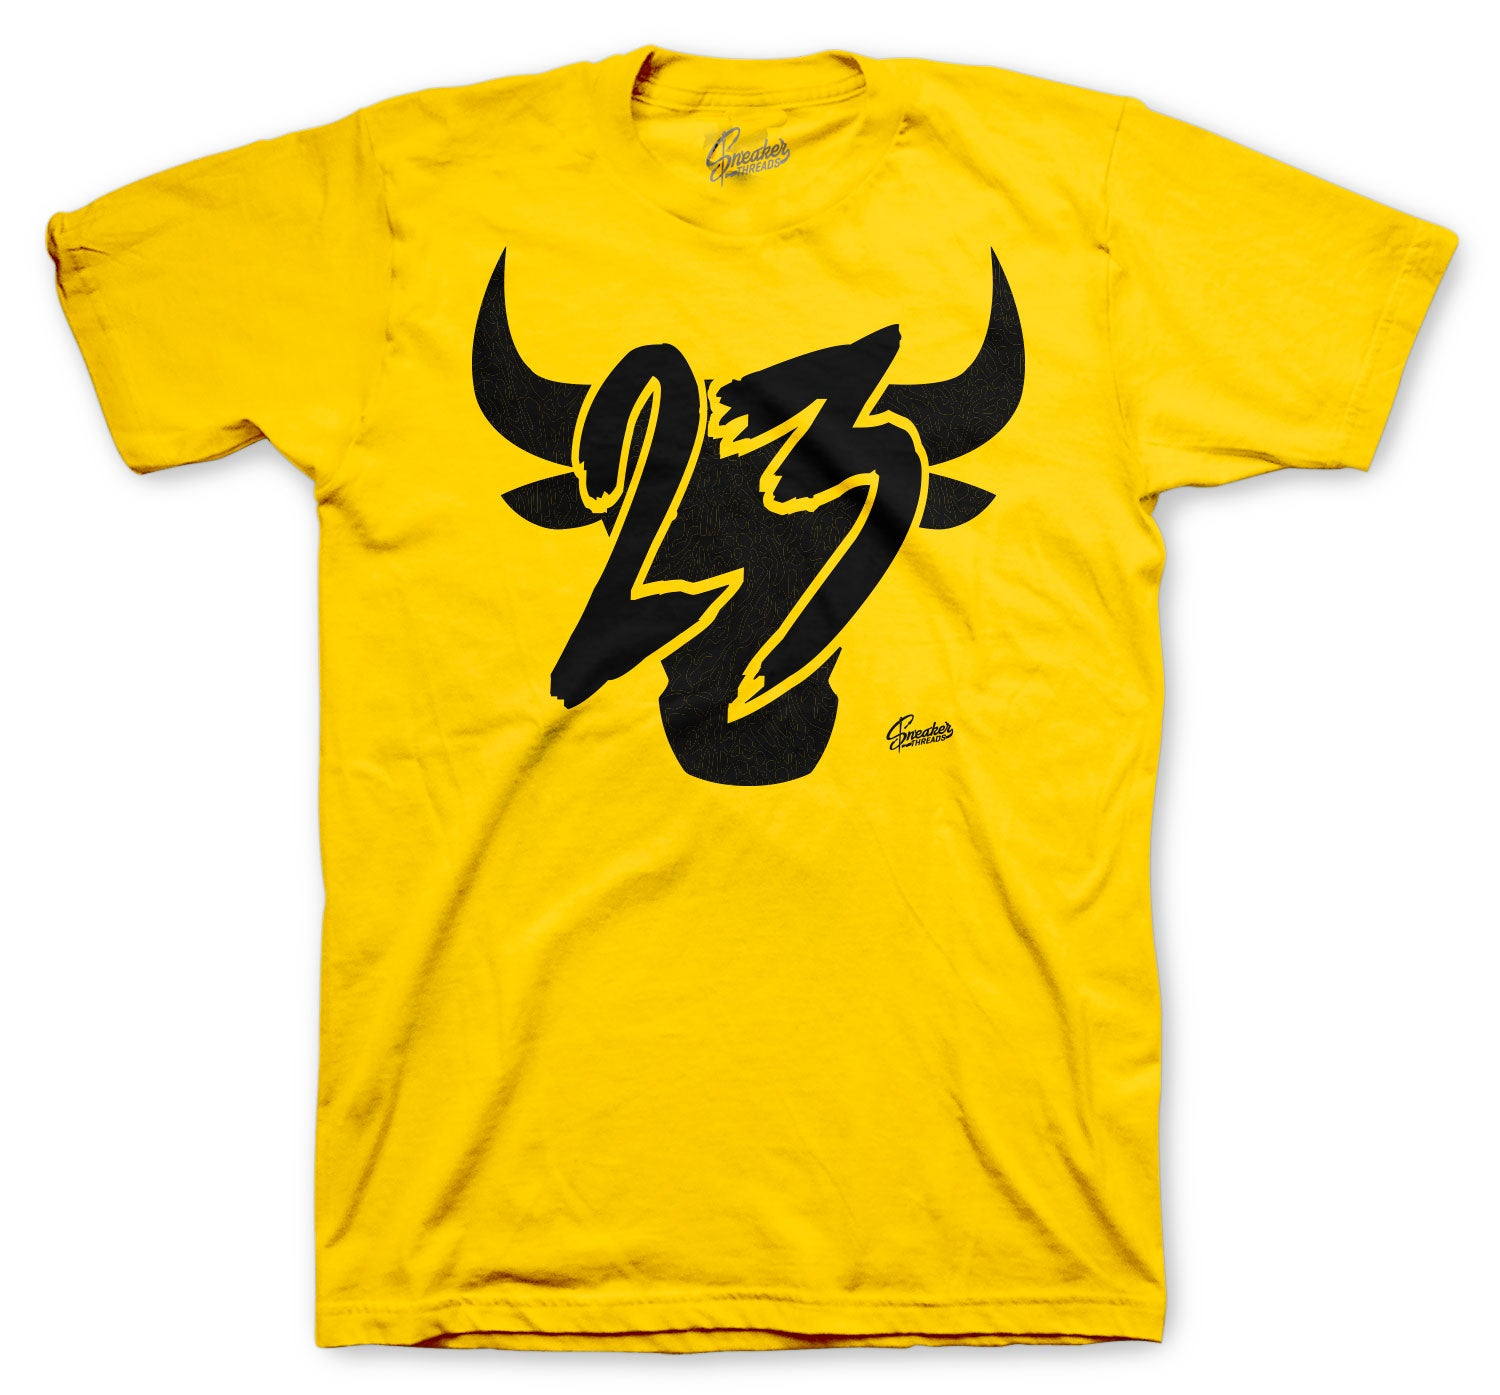 mens shirts to match the Jordan 12 university gold sneakers